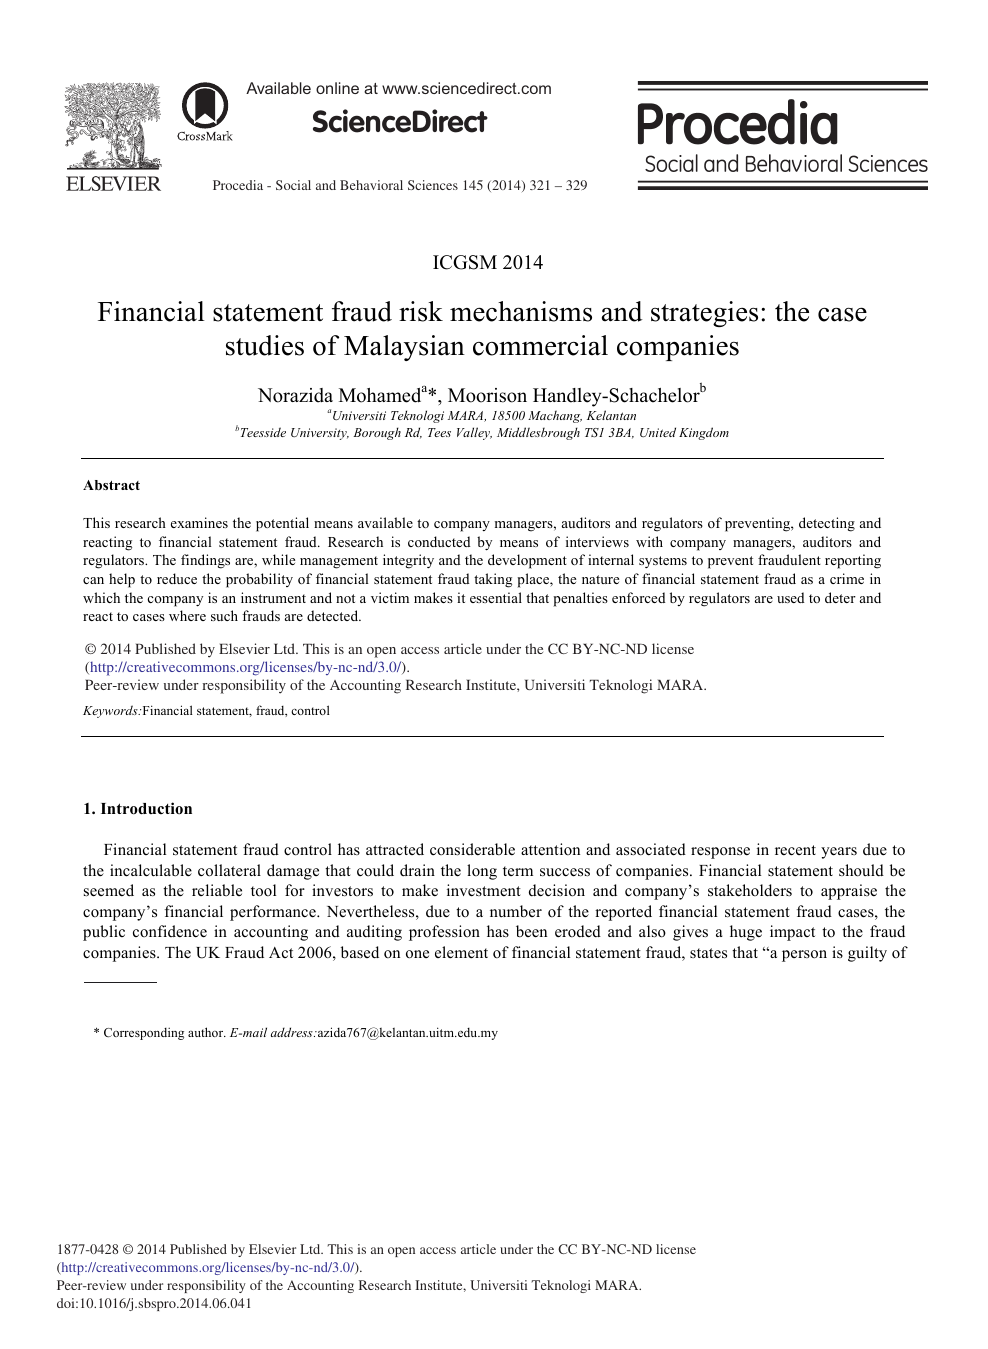 Financial Statement Fraud Risk Mechanisms And Strategies The Case Studies Of Malaysian Commercial Companies Topic Of Research Paper In Economics And Business Download Scholarly Article Pdf And Read For Free On